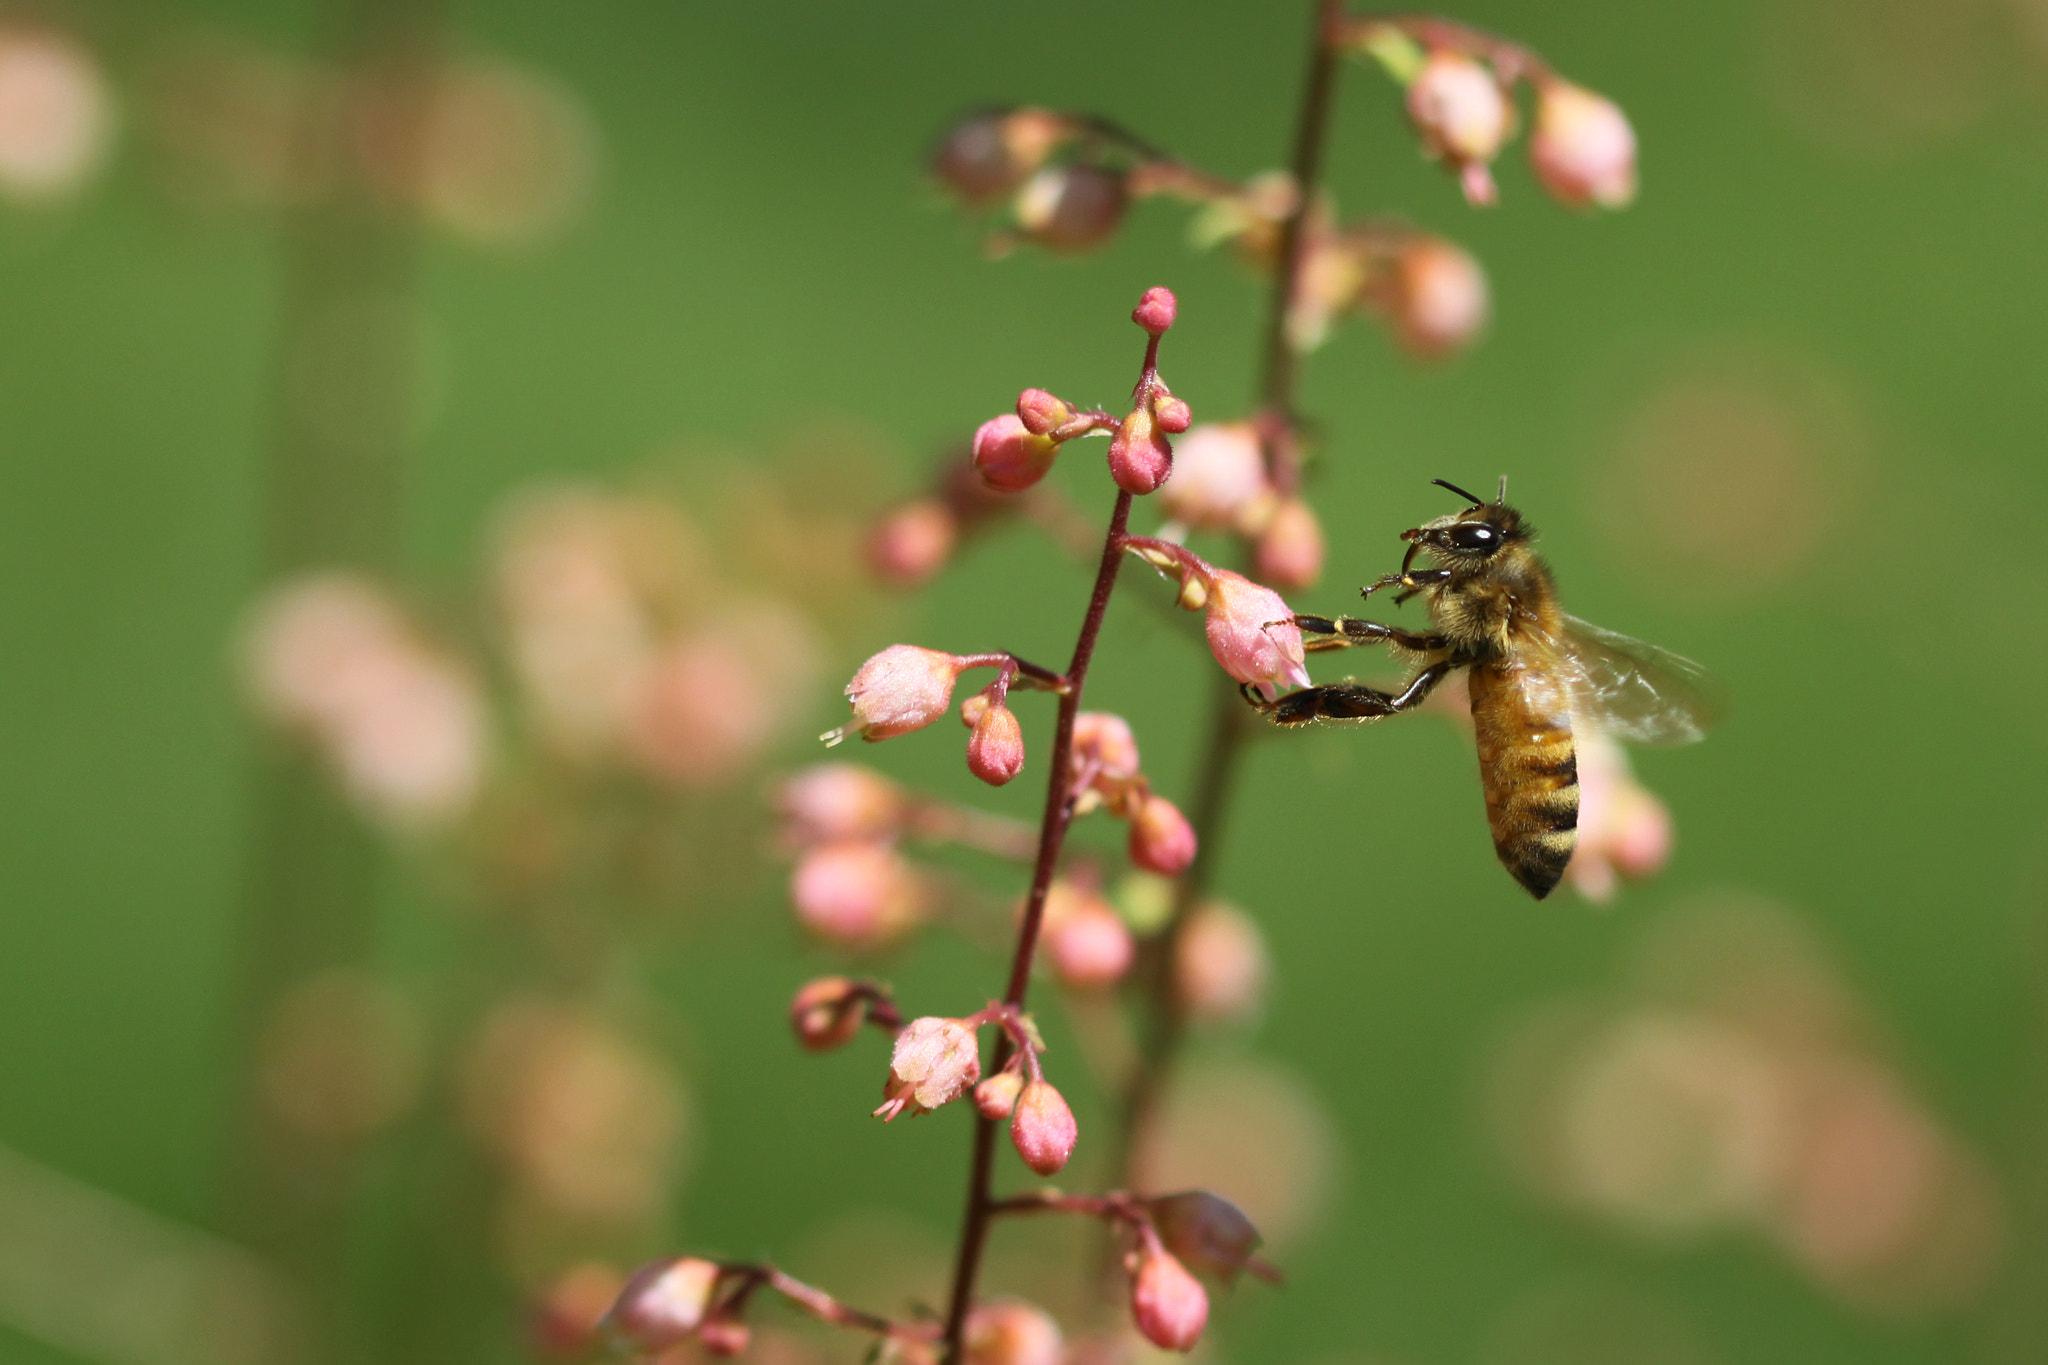 Photograph Honeybee Enjoying A Miracle by Kenneth  Maurer on 500px